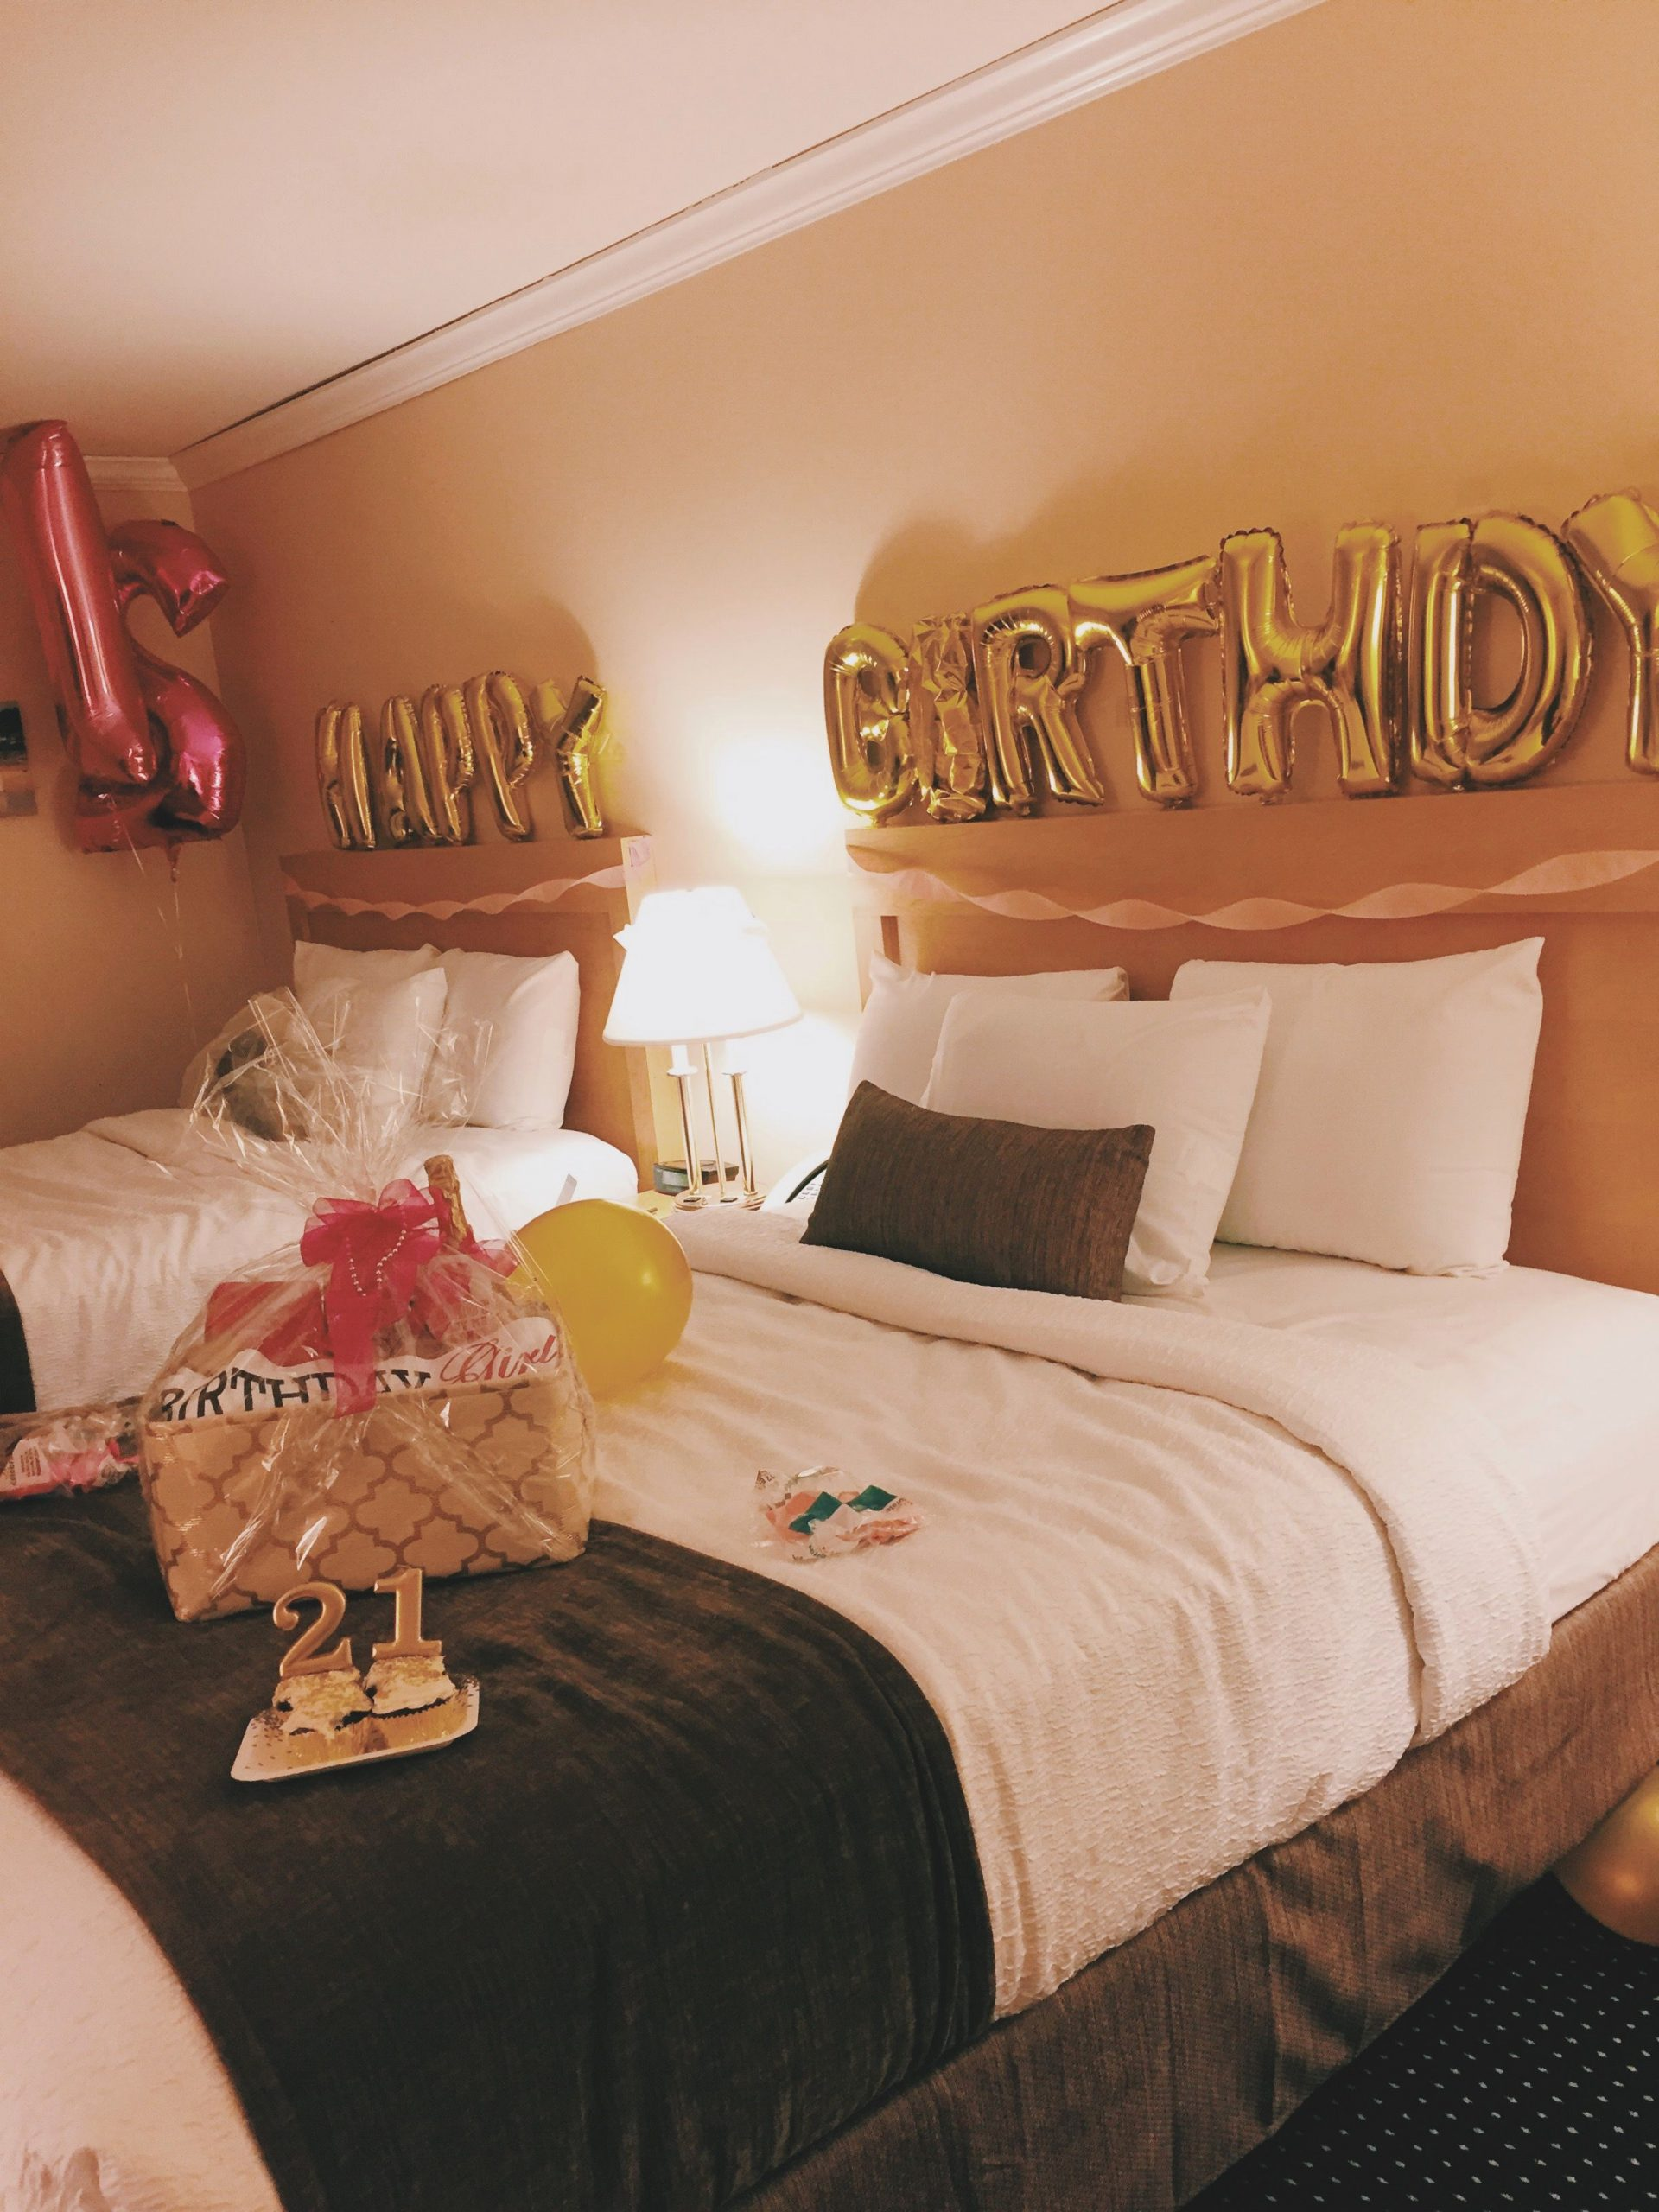 Birthday Decoration Ideas for Hotel Room Luxury Hotel Decorations for A Birthday